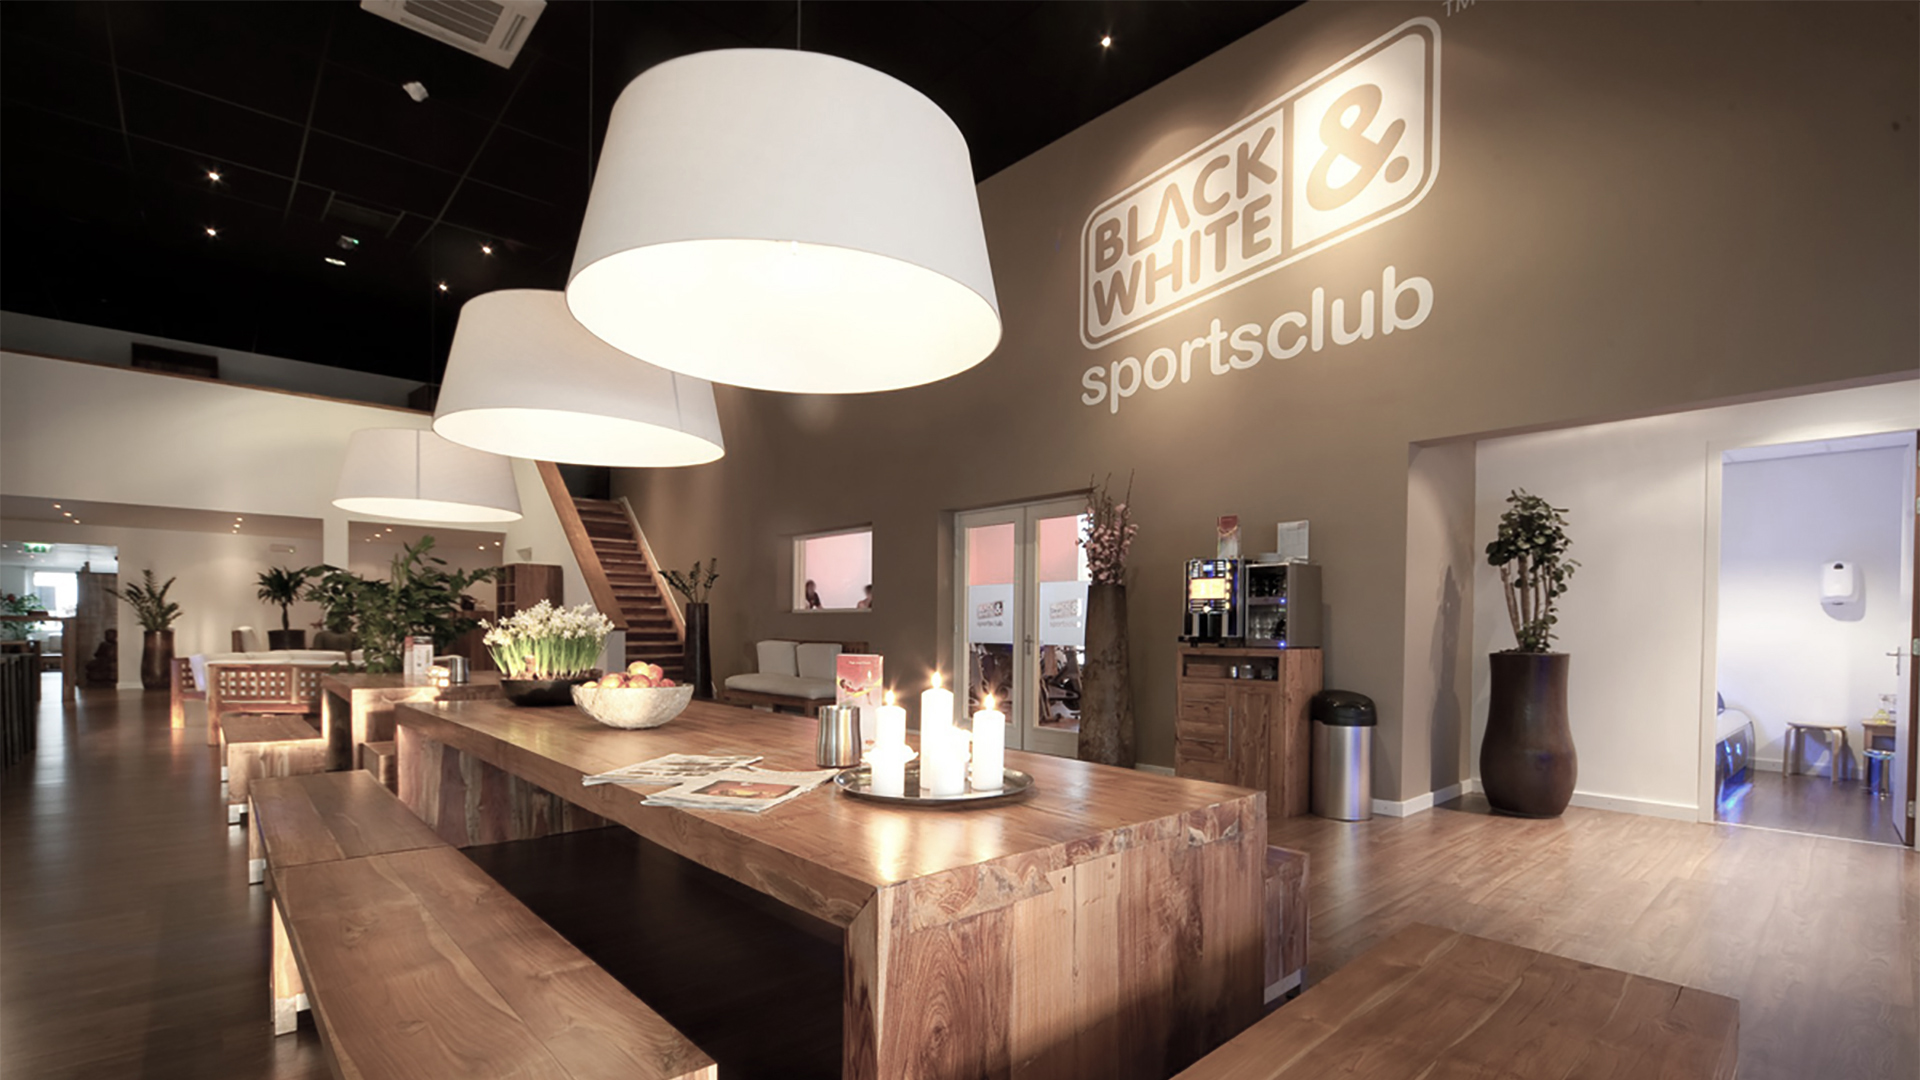 black&white sports club